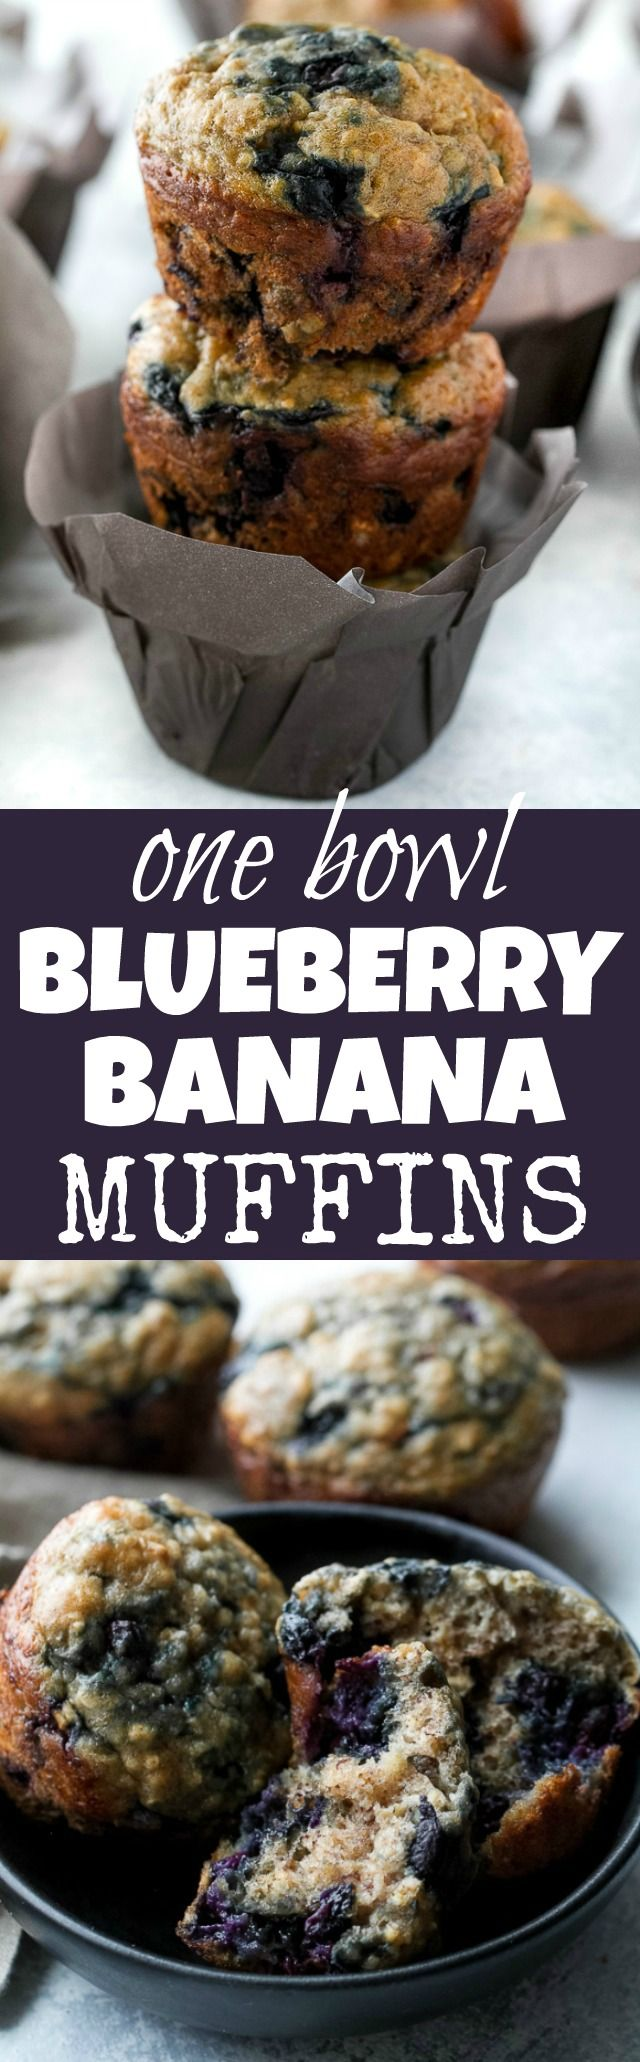 These blueberry banana oatmeal muffins are made with NO butter or oil, but so soft and tender that you'd never be able to tell! Super easy to whip up in only ONE BOWL, they make a deliciously healthy breakfast or snack. | runningwithspoons.com